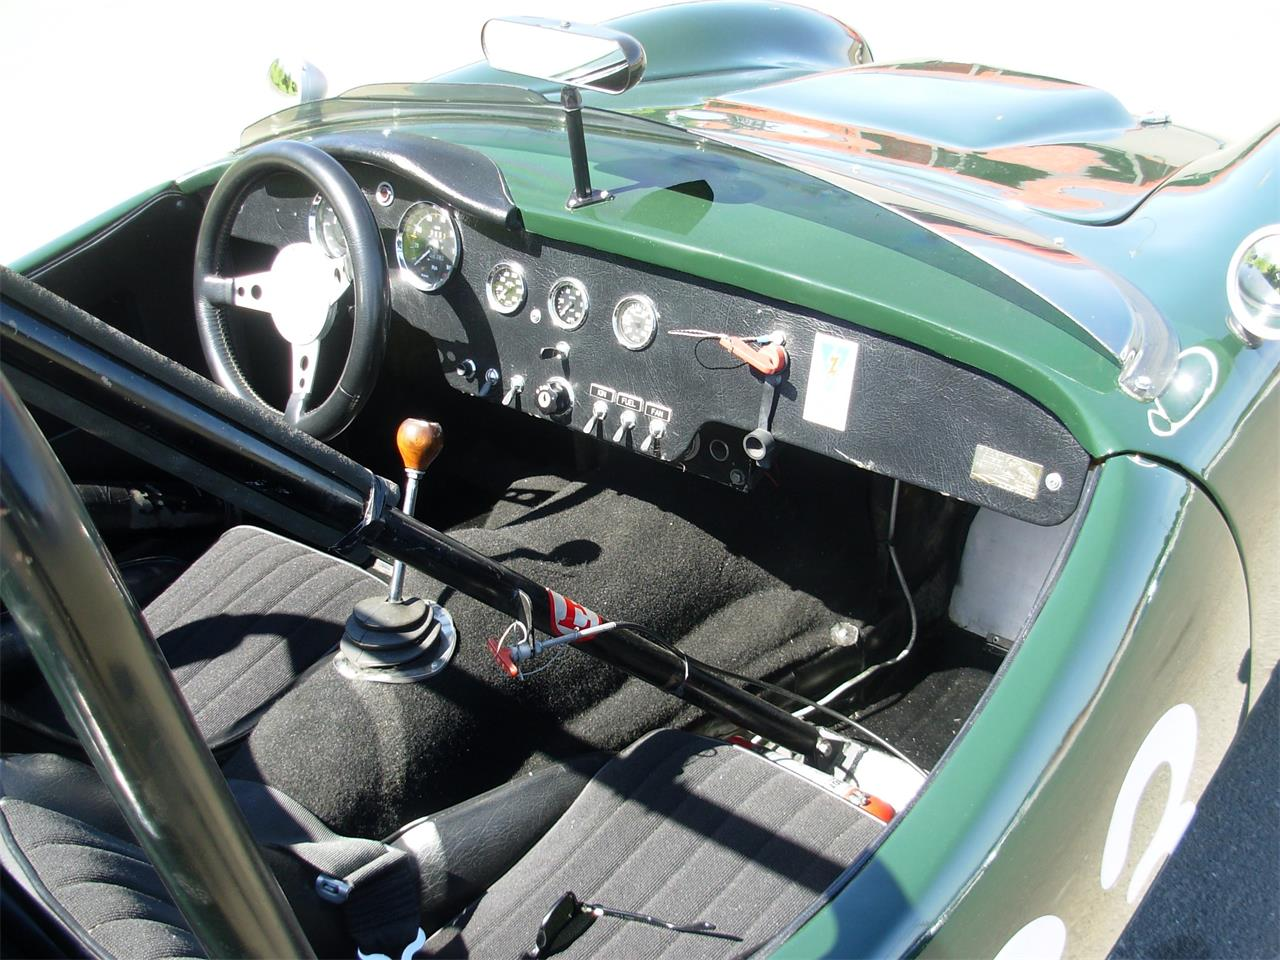 1963 Elva Courier Mark III for sale in Berkeley, CA – photo 5